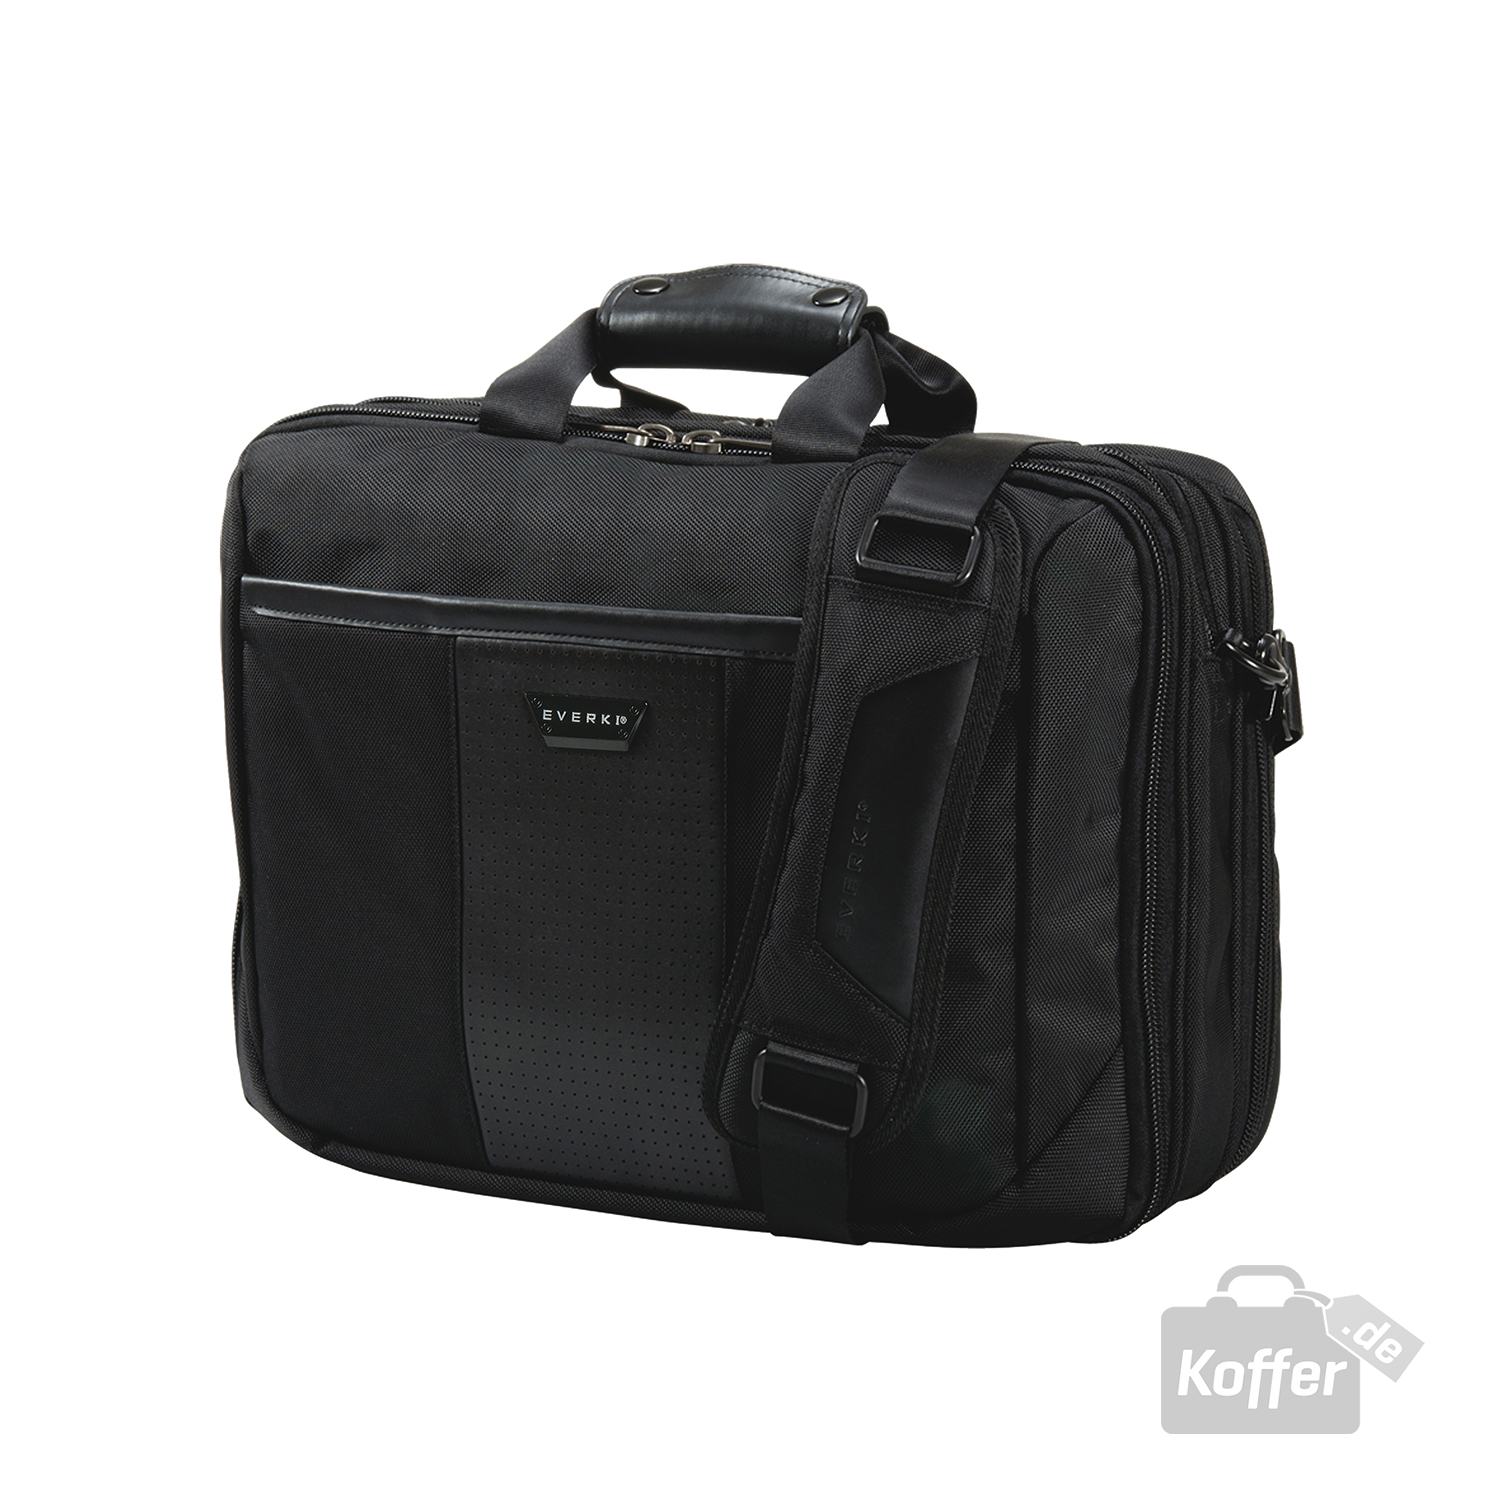 everki versa premium laptoptasche 17 3 zoll jetzt auf. Black Bedroom Furniture Sets. Home Design Ideas